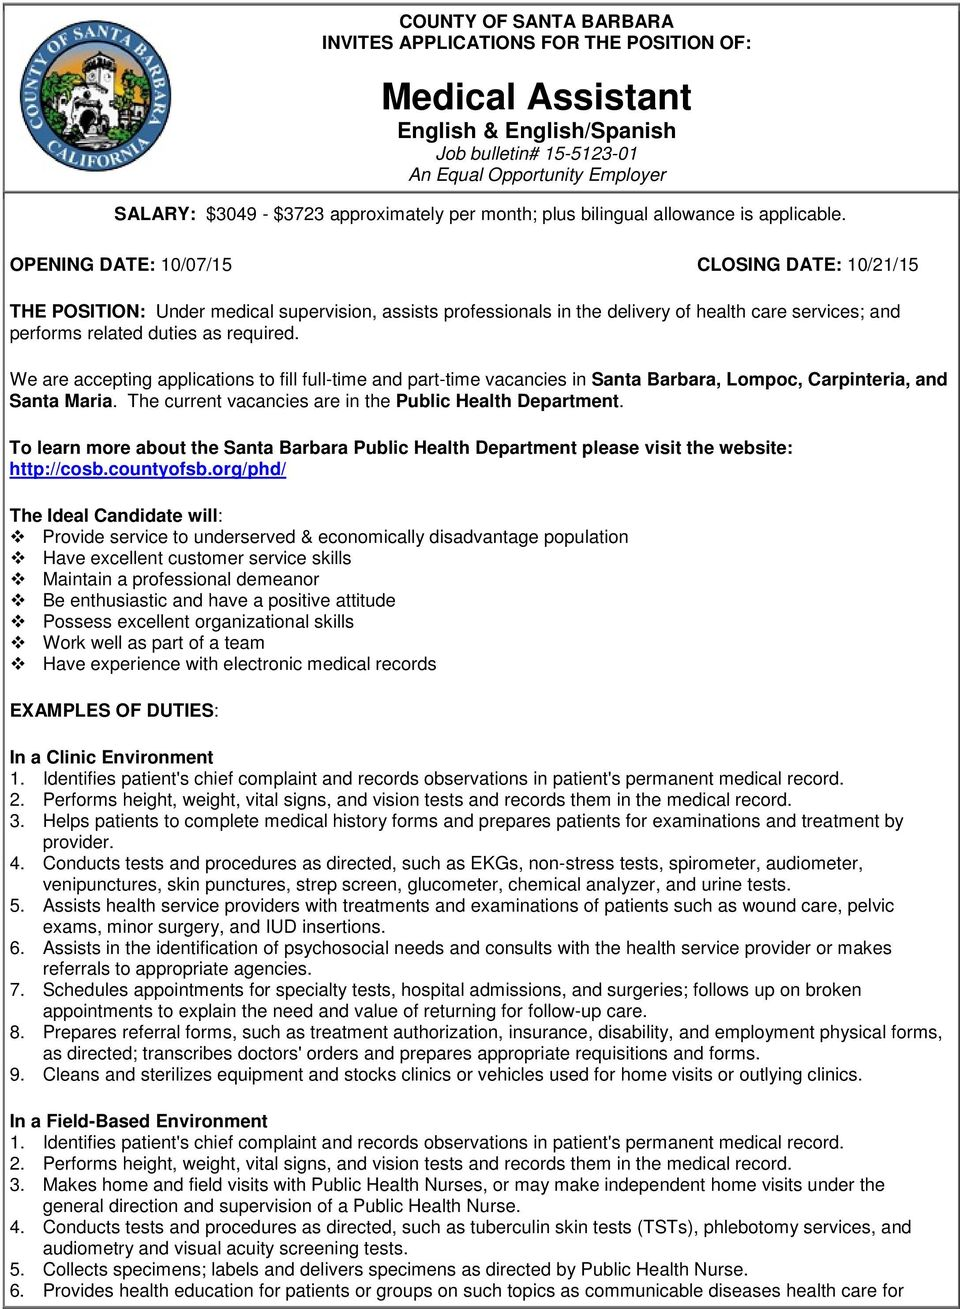 OPENING DATE: 10/07/15 CLOSING DATE: 10/21/15 THE POSITION: Under medical supervision, assists professionals in the delivery of health care services; and performs related duties as required.